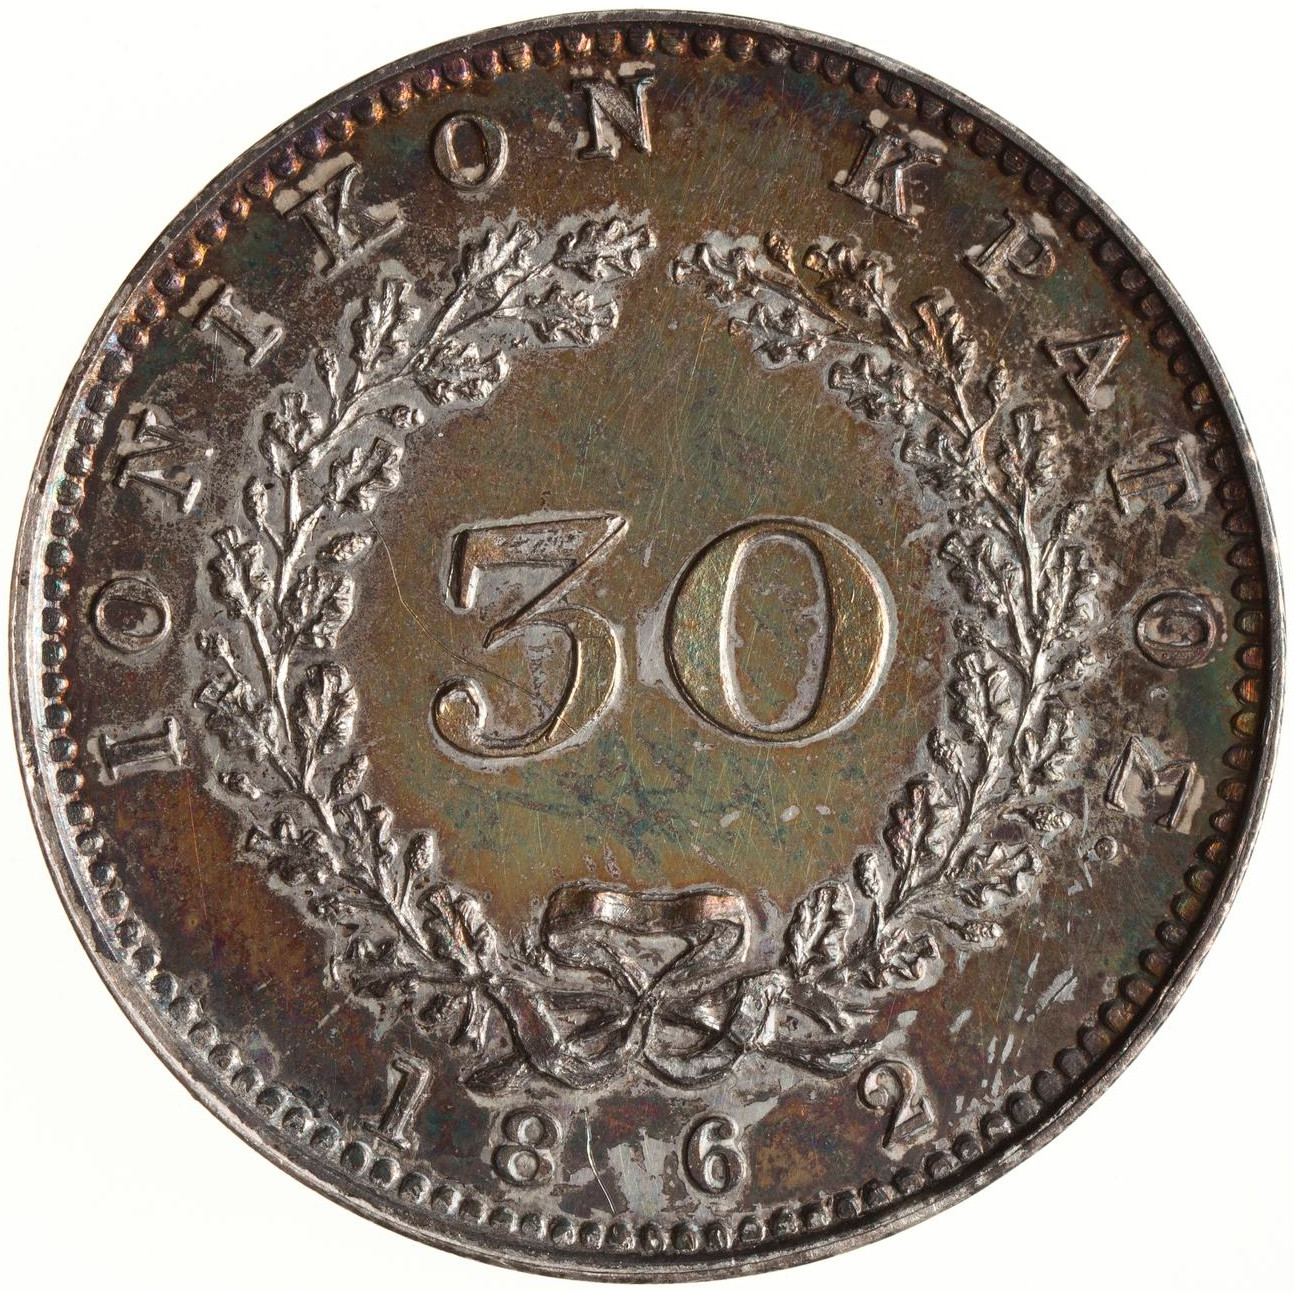 Thirty Lepta: Photo Proof Coin - 30 Lepta, Ionian Islands, Greece, 1862